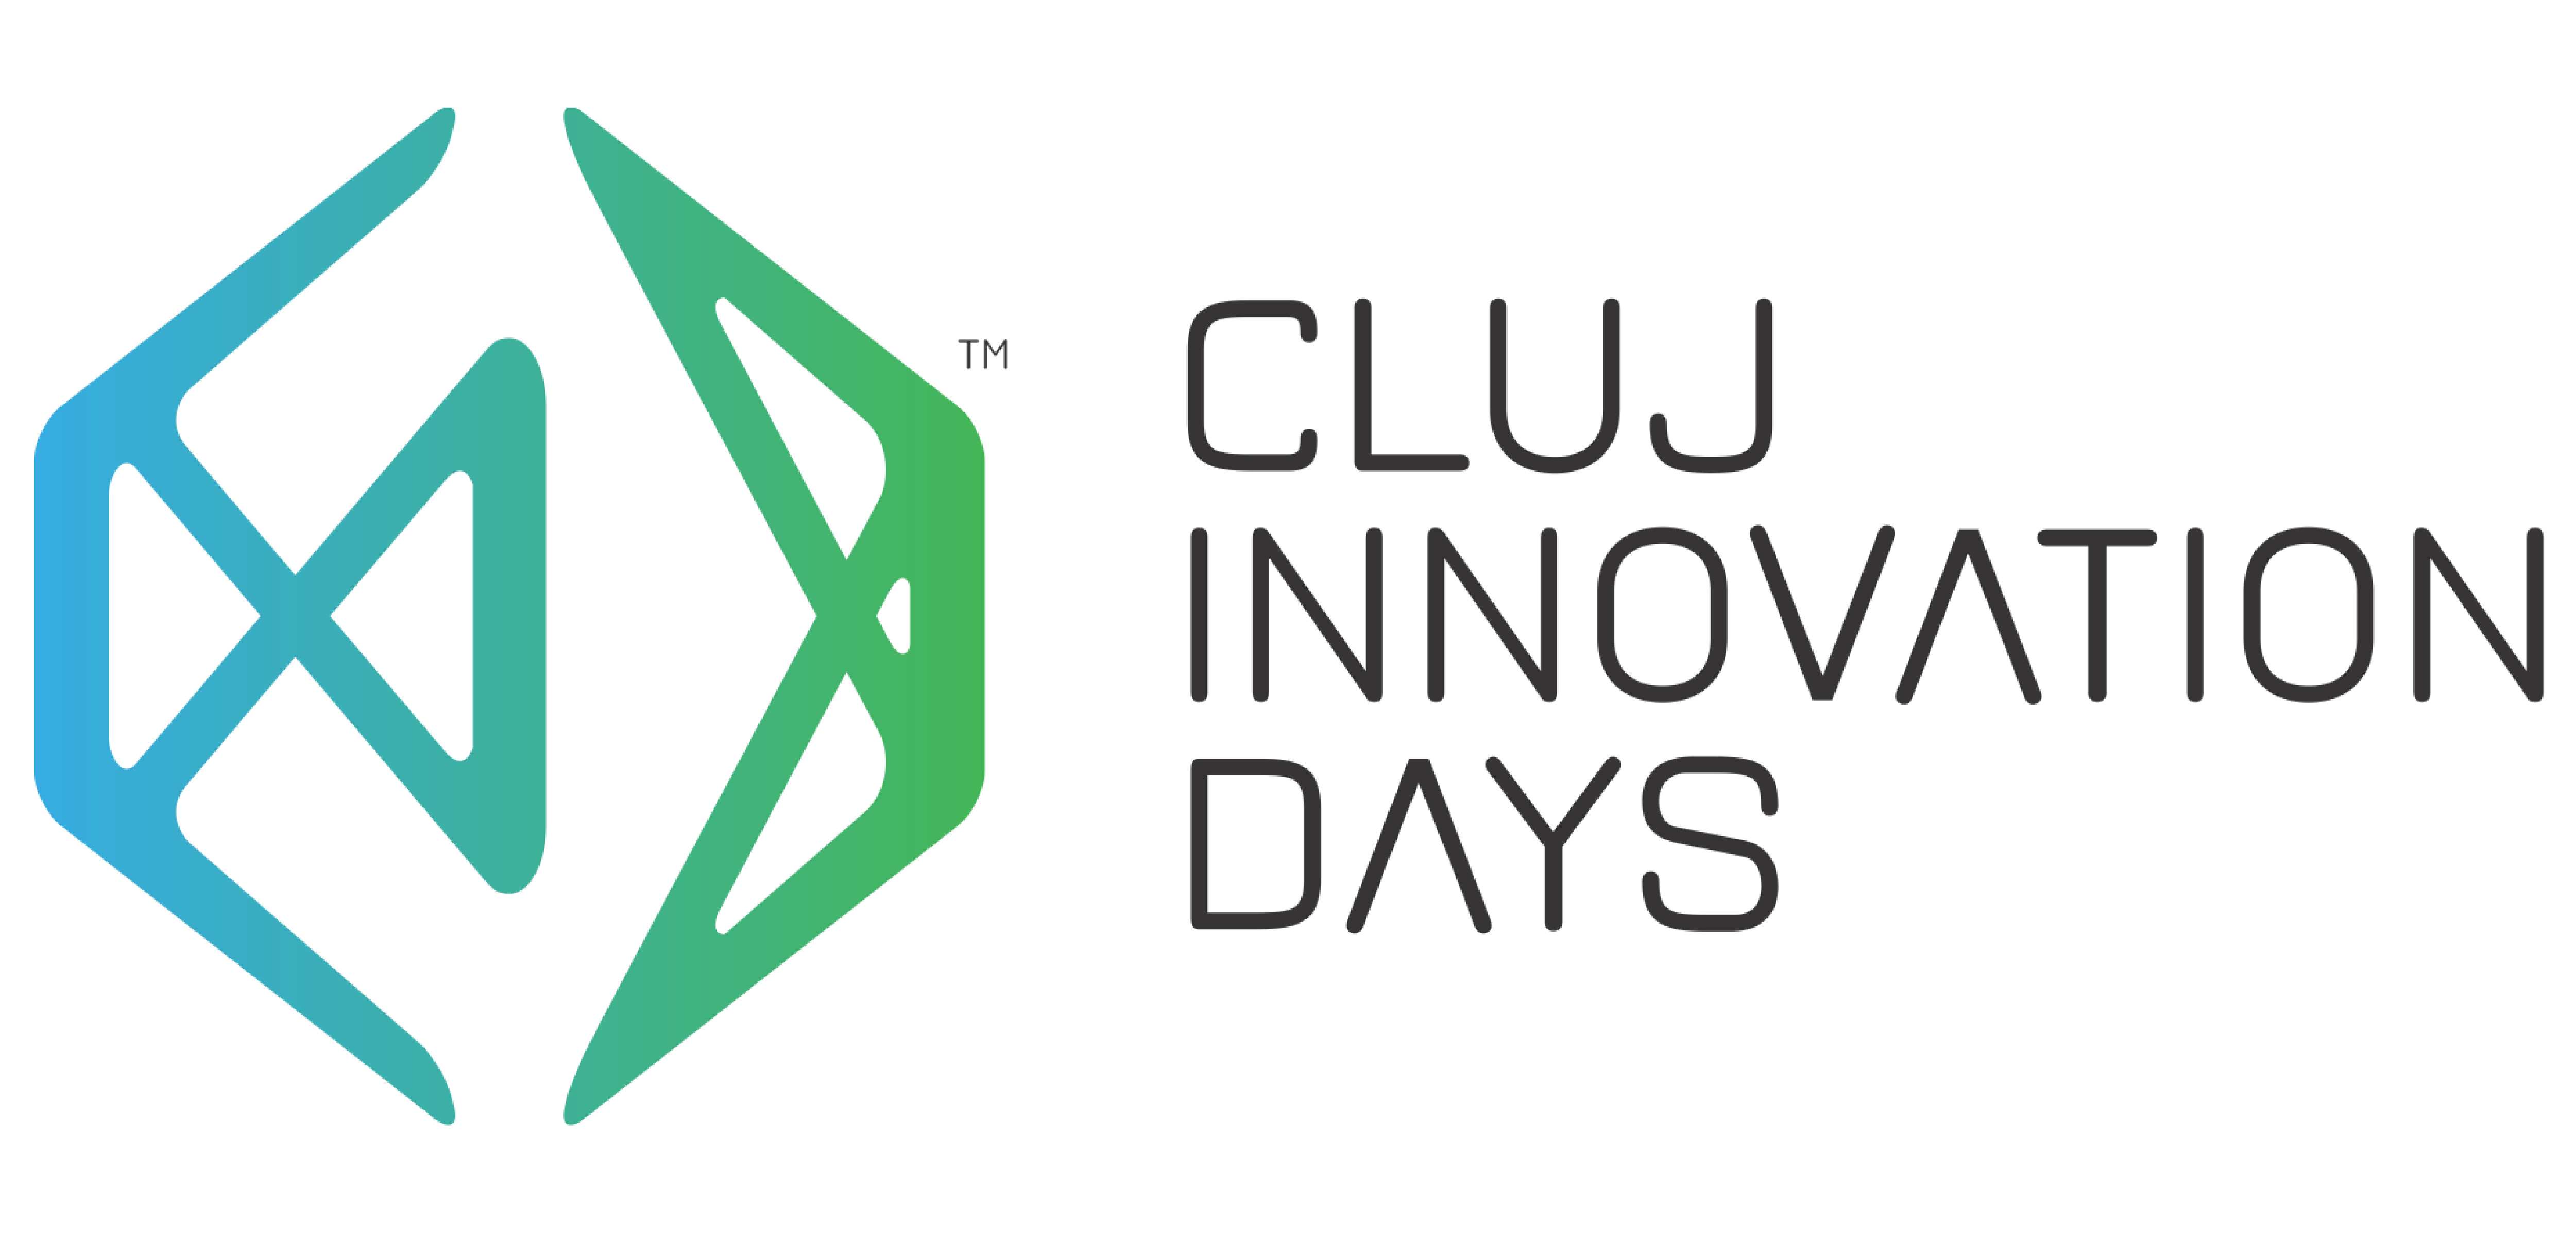 Cluj Innovation Days 2020